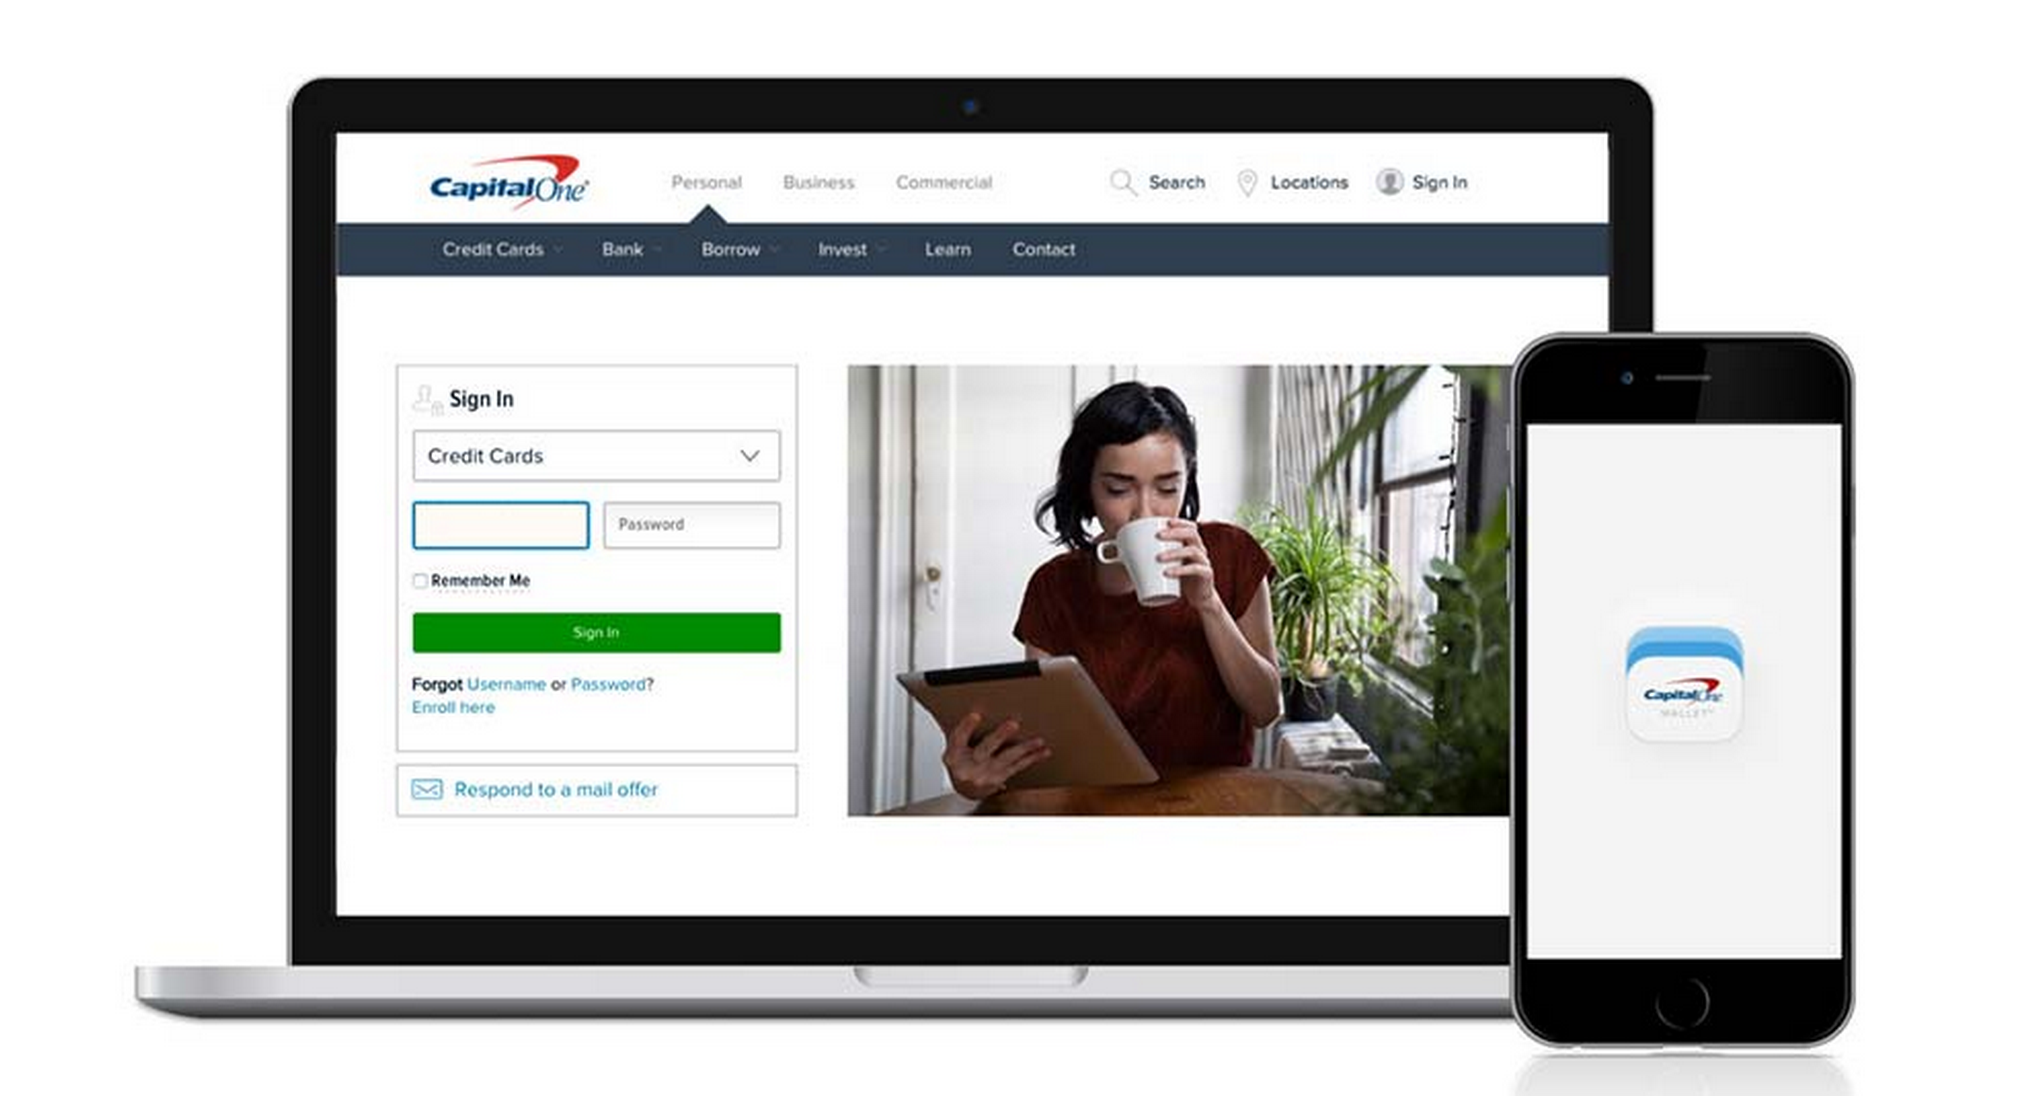 Bored of answering security questions before every login? Capital One's Swift ID shows how to avoid it